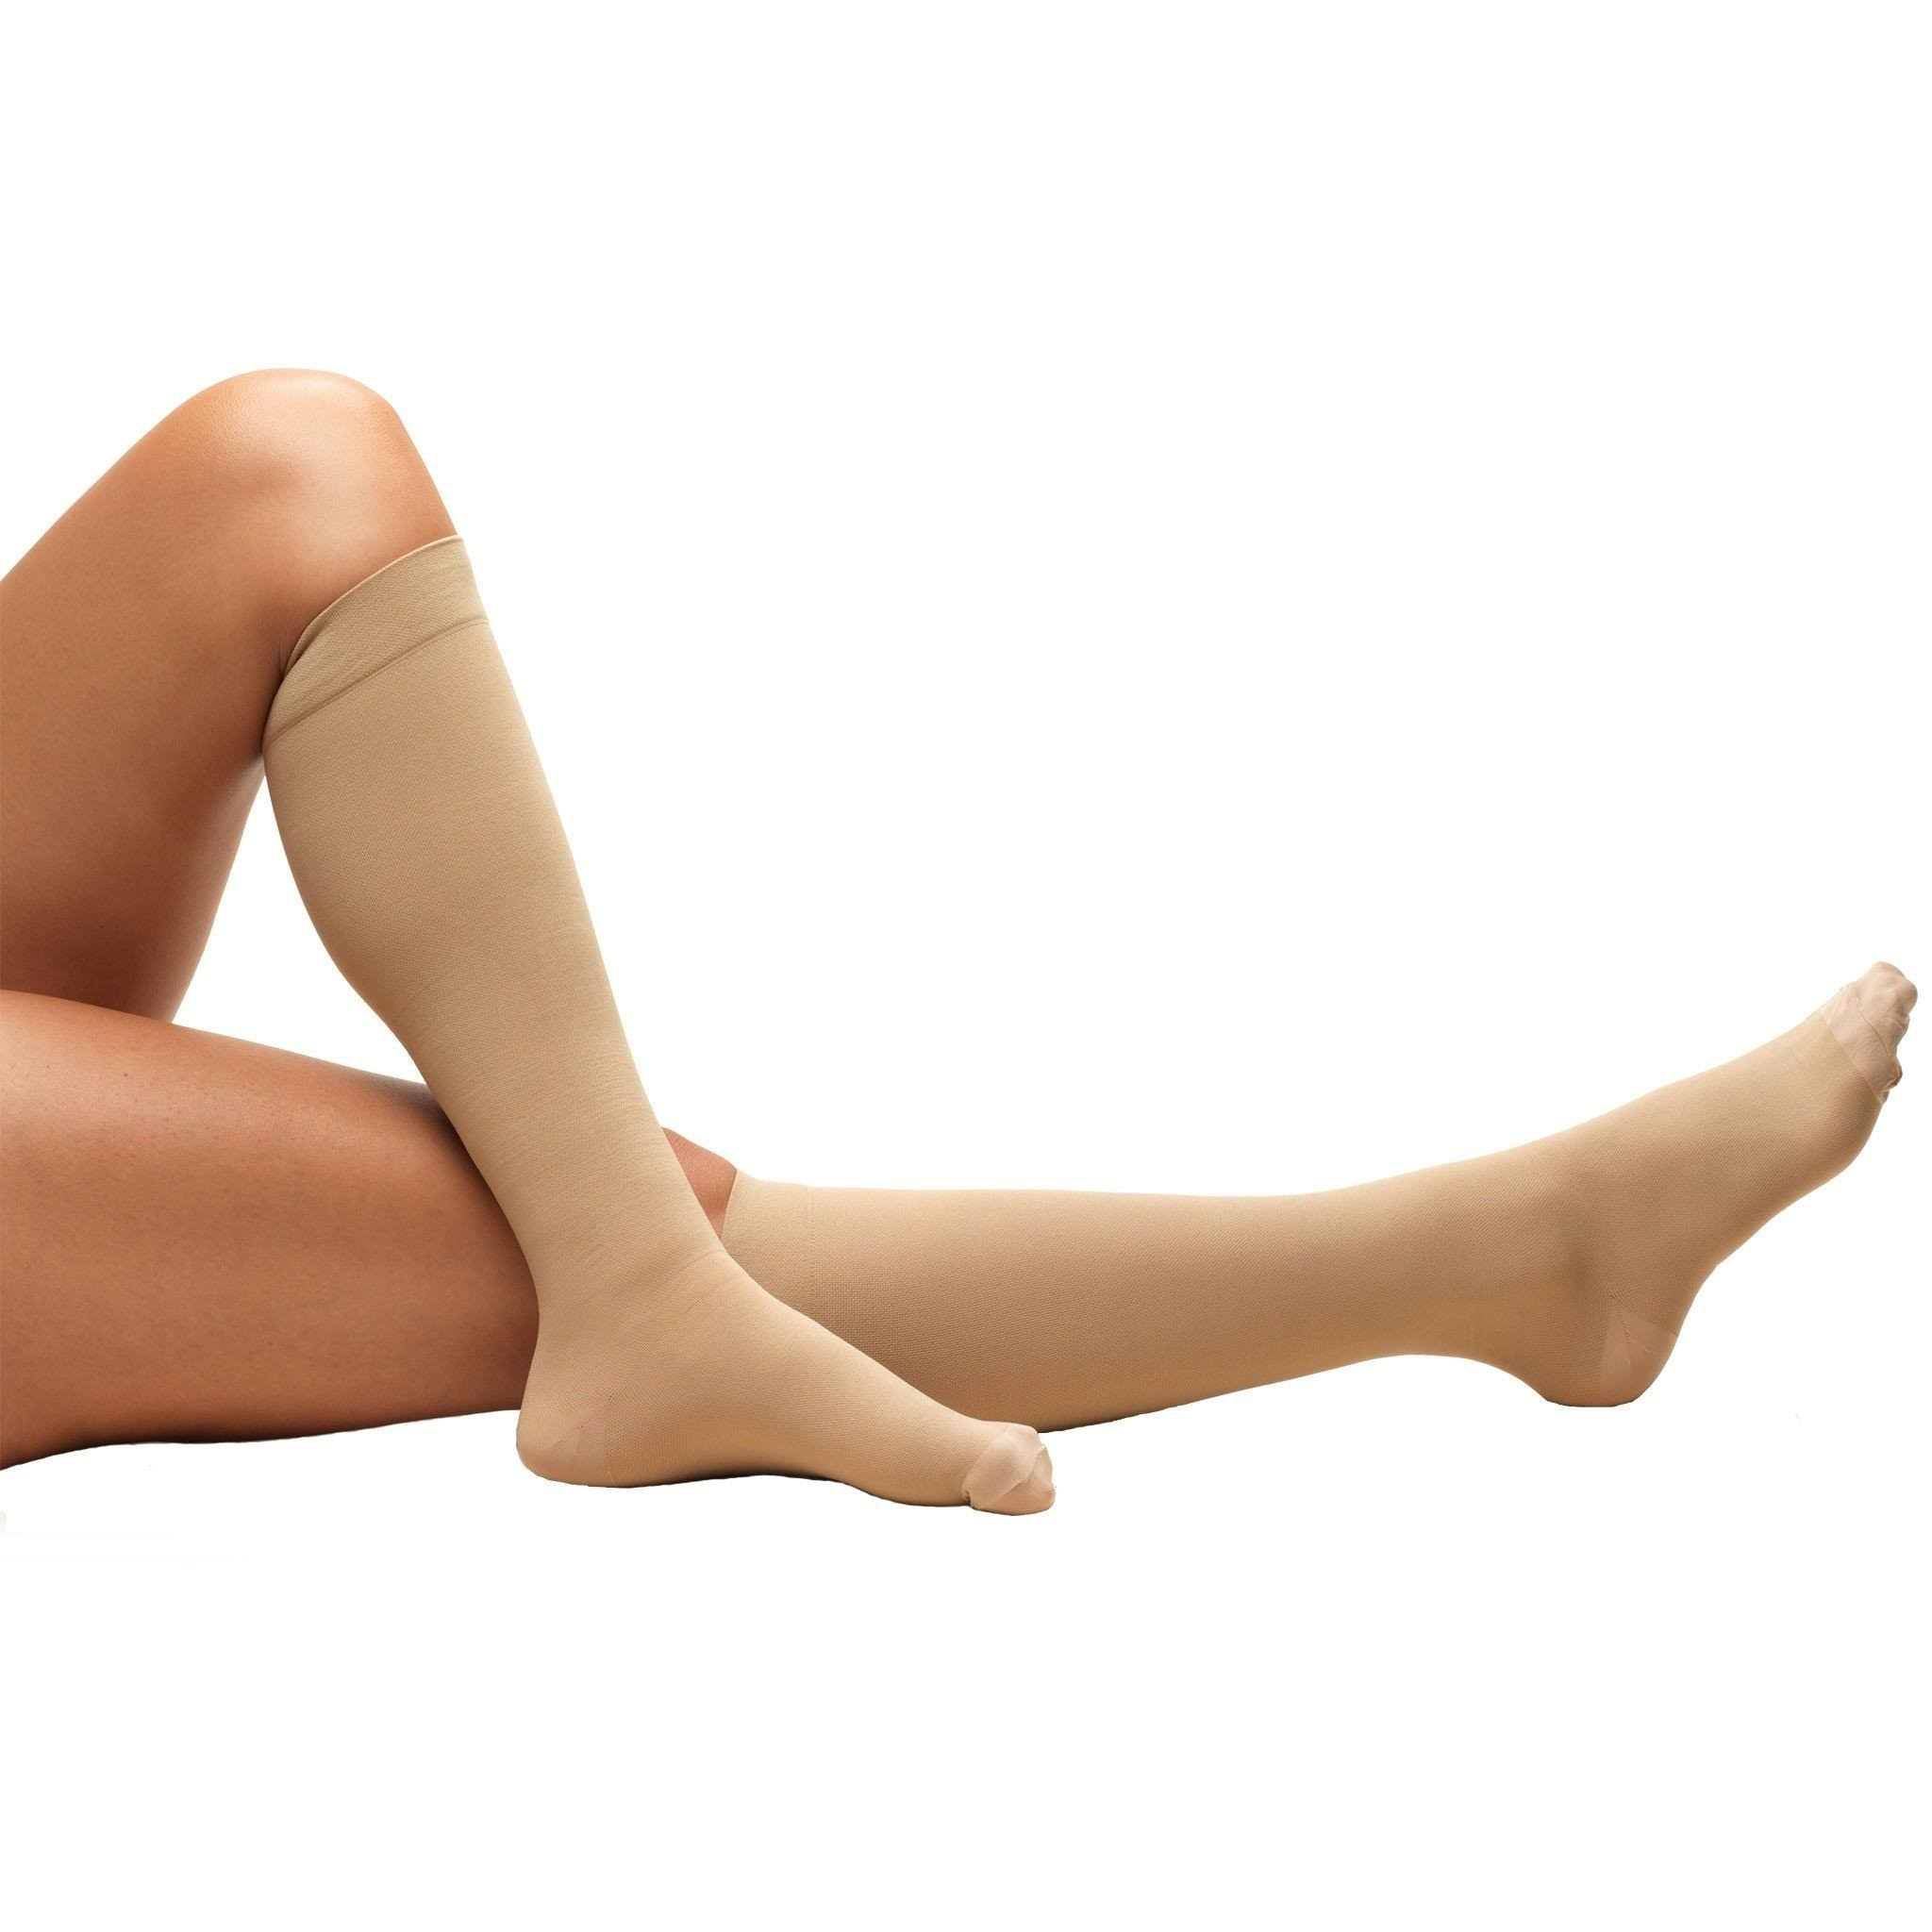 Truform 8808 Knee High Closed Toe Anti Embolism Stockings - Beige, XXLarge, 18mmHg